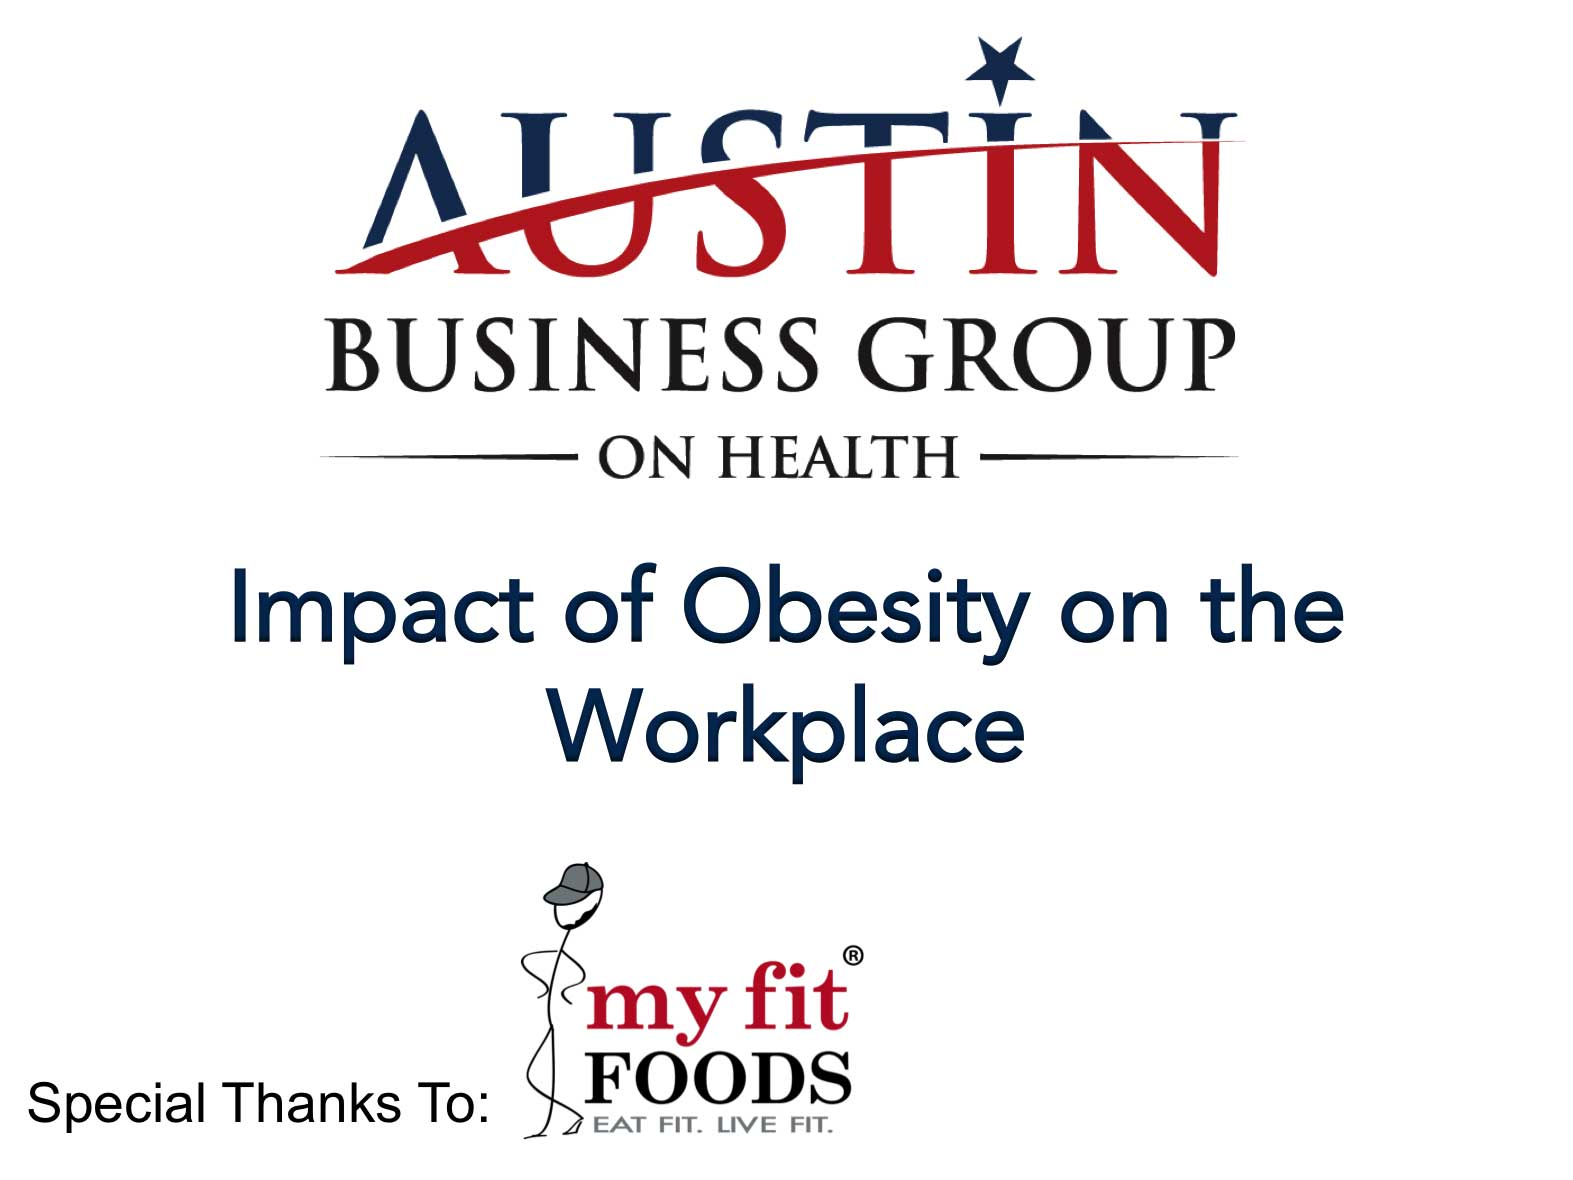 Impact of Obesity on the Workplace